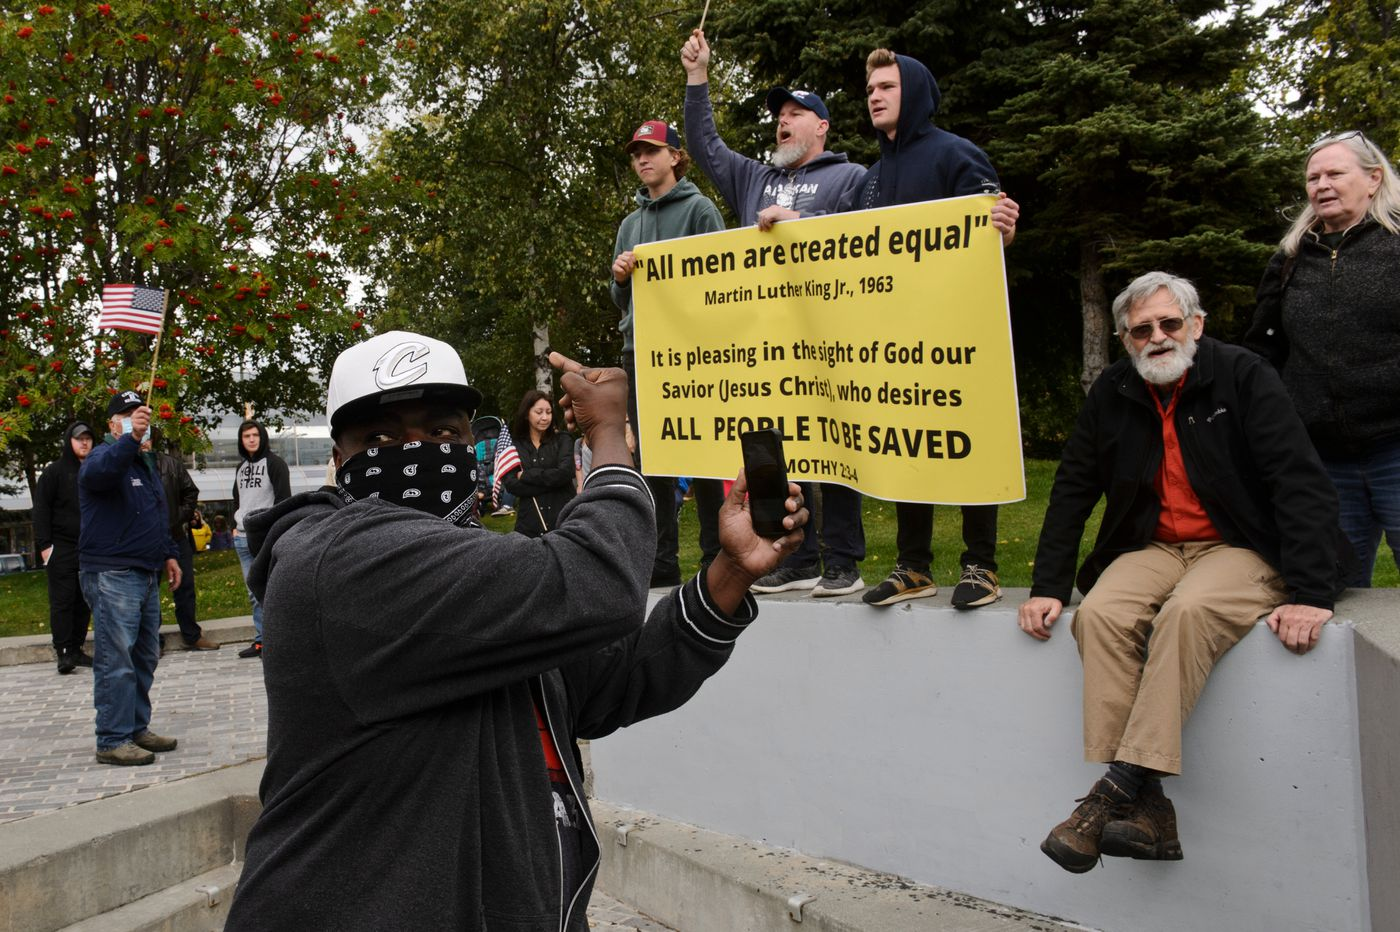 """A man gives a middle finger to counter-demonstrators at Town Square. The Alaska Black Caucus hosted the """"March on Alaska"""" in downtown Anchorage on Monday, September 7, 2020. The event supported racial equality, police accountability reform and the well-being of the Black community, according to organizers. (Marc Lester / ADN)"""